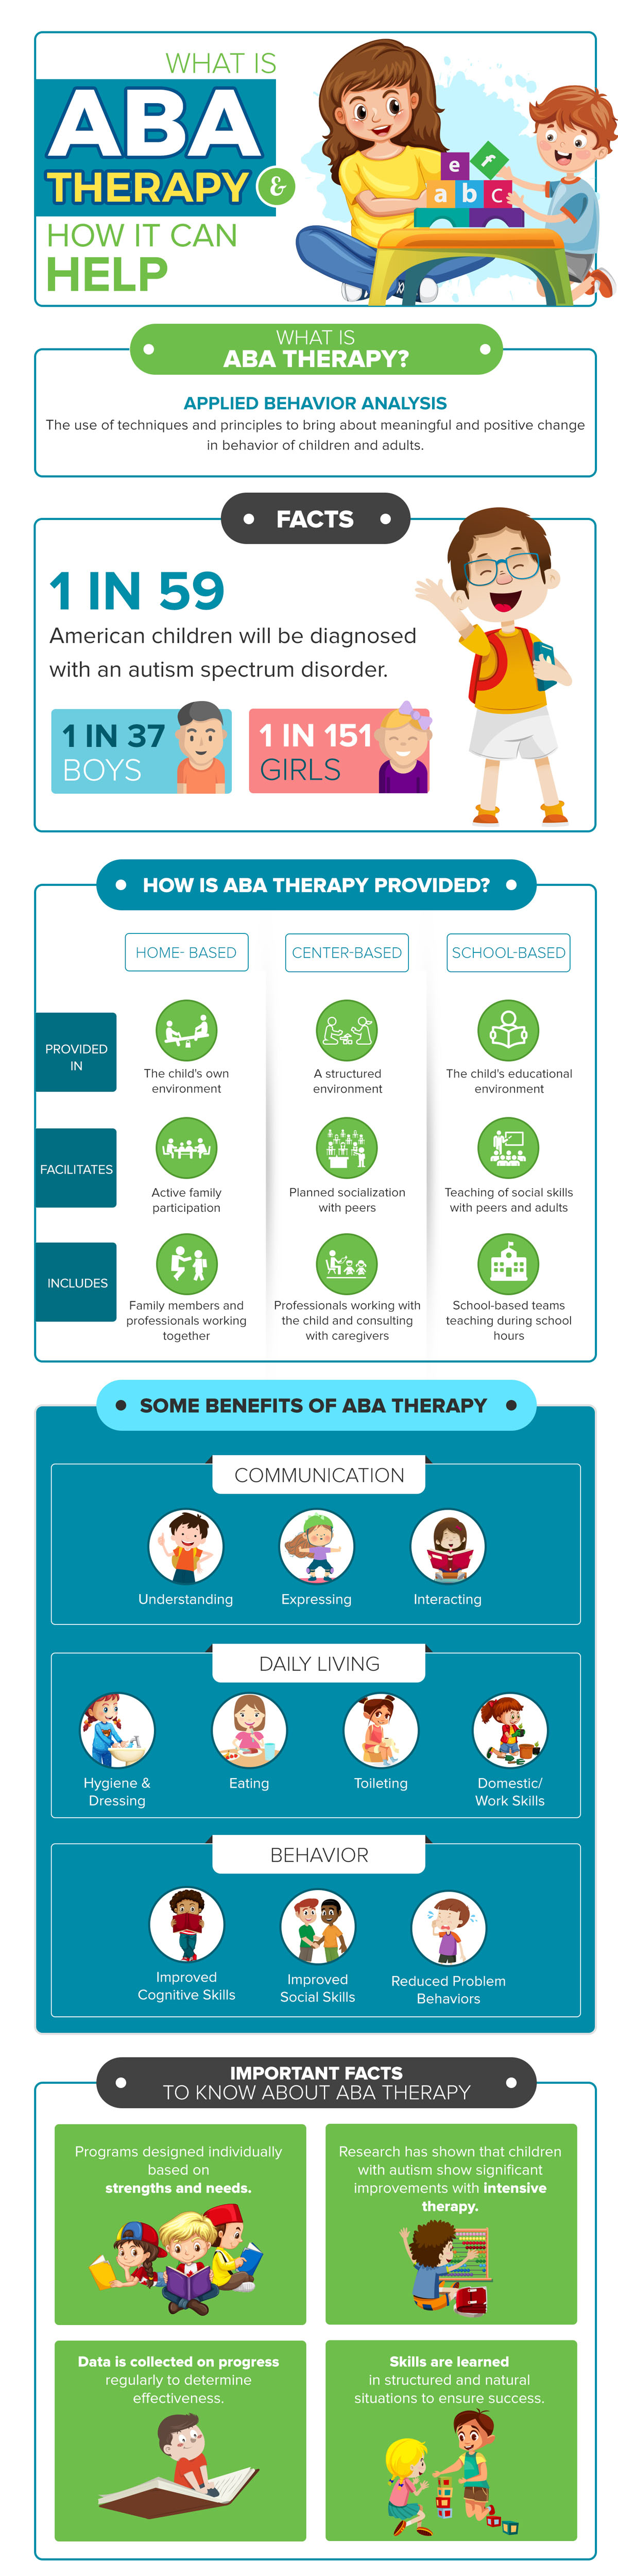 What Is ABA Therapy & How It Can Help